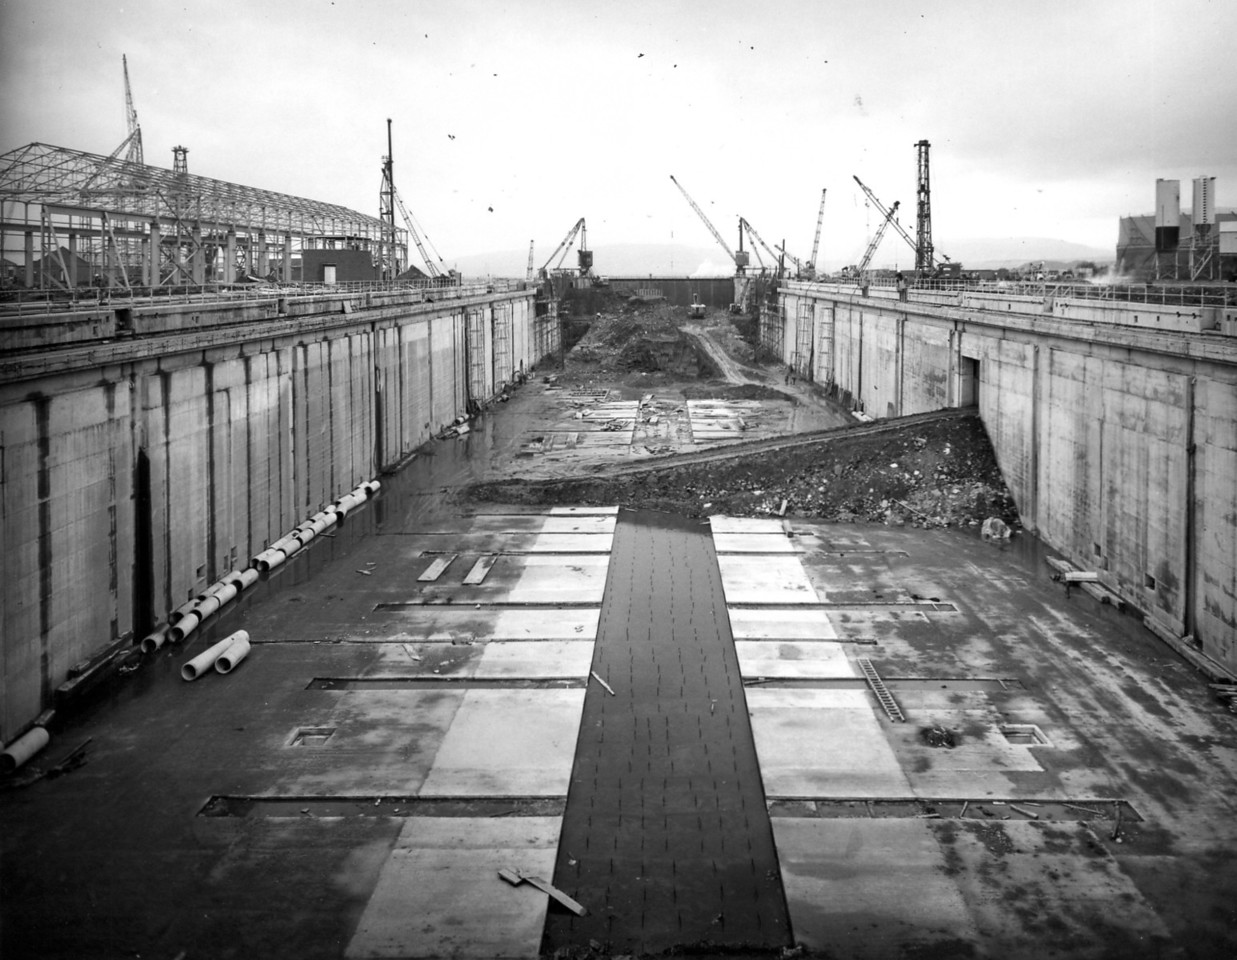 D105General view along centreline of dock - 1/10/1963